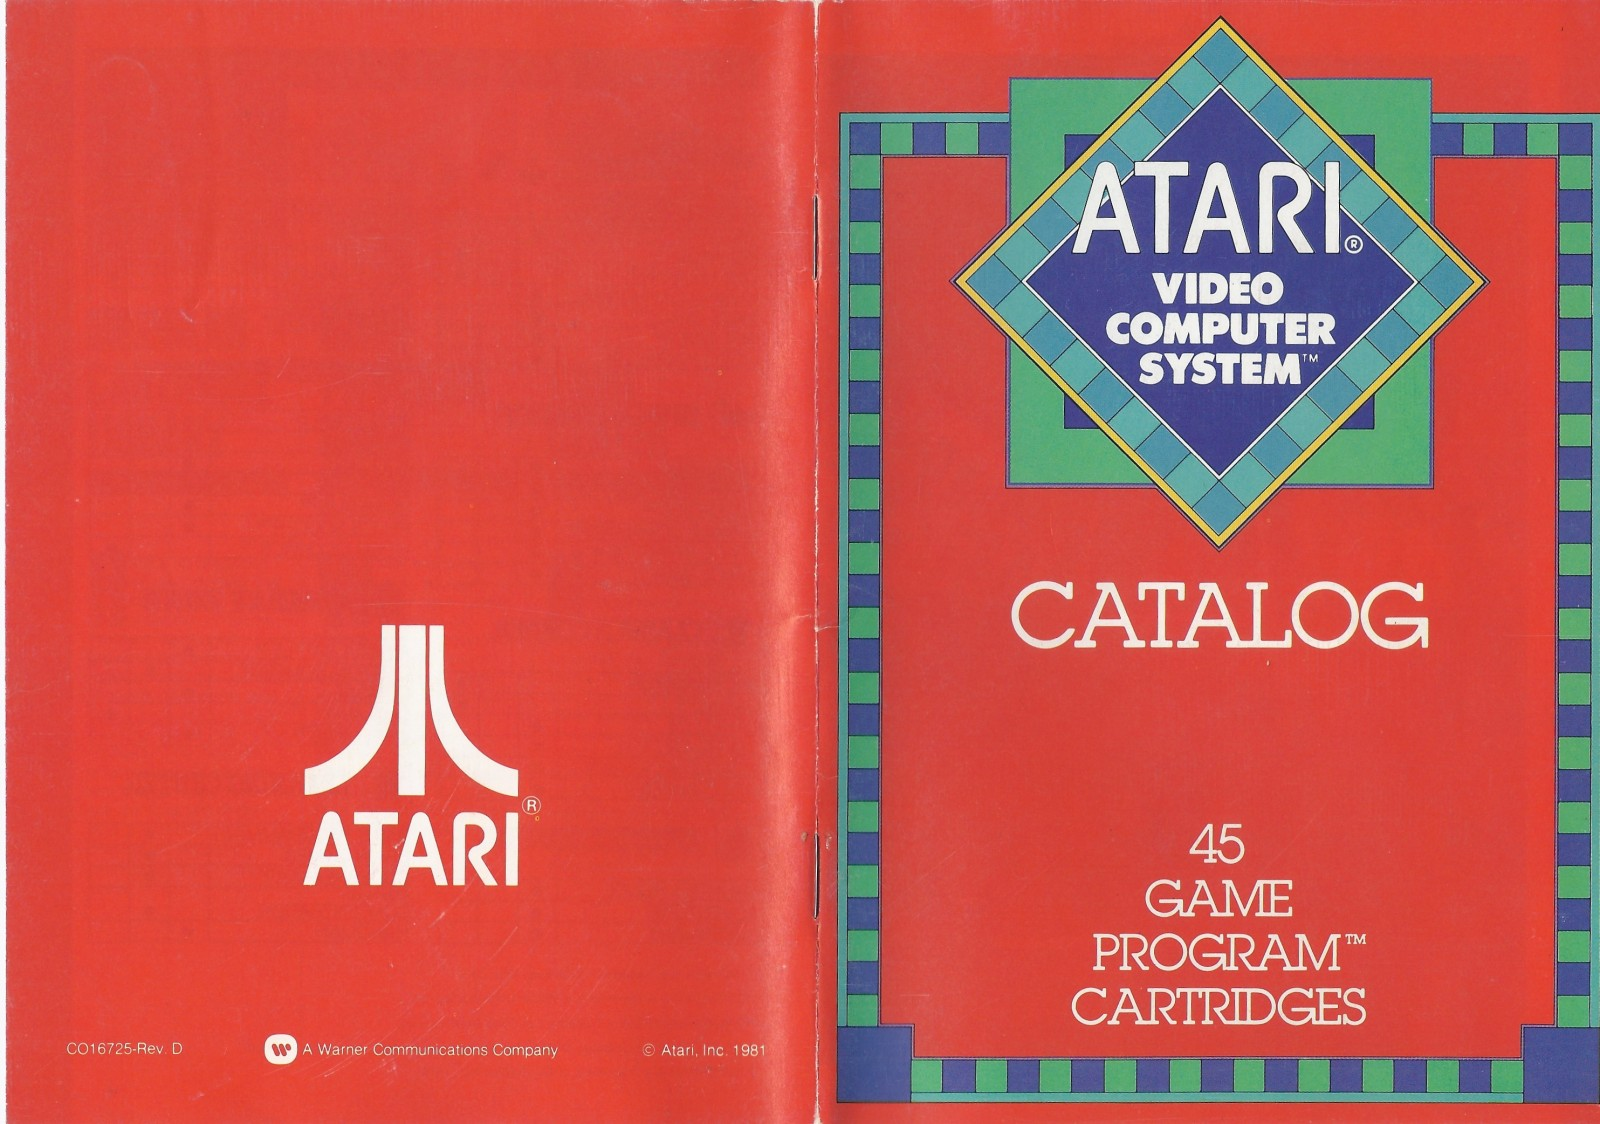 New Atari Catalog Variant